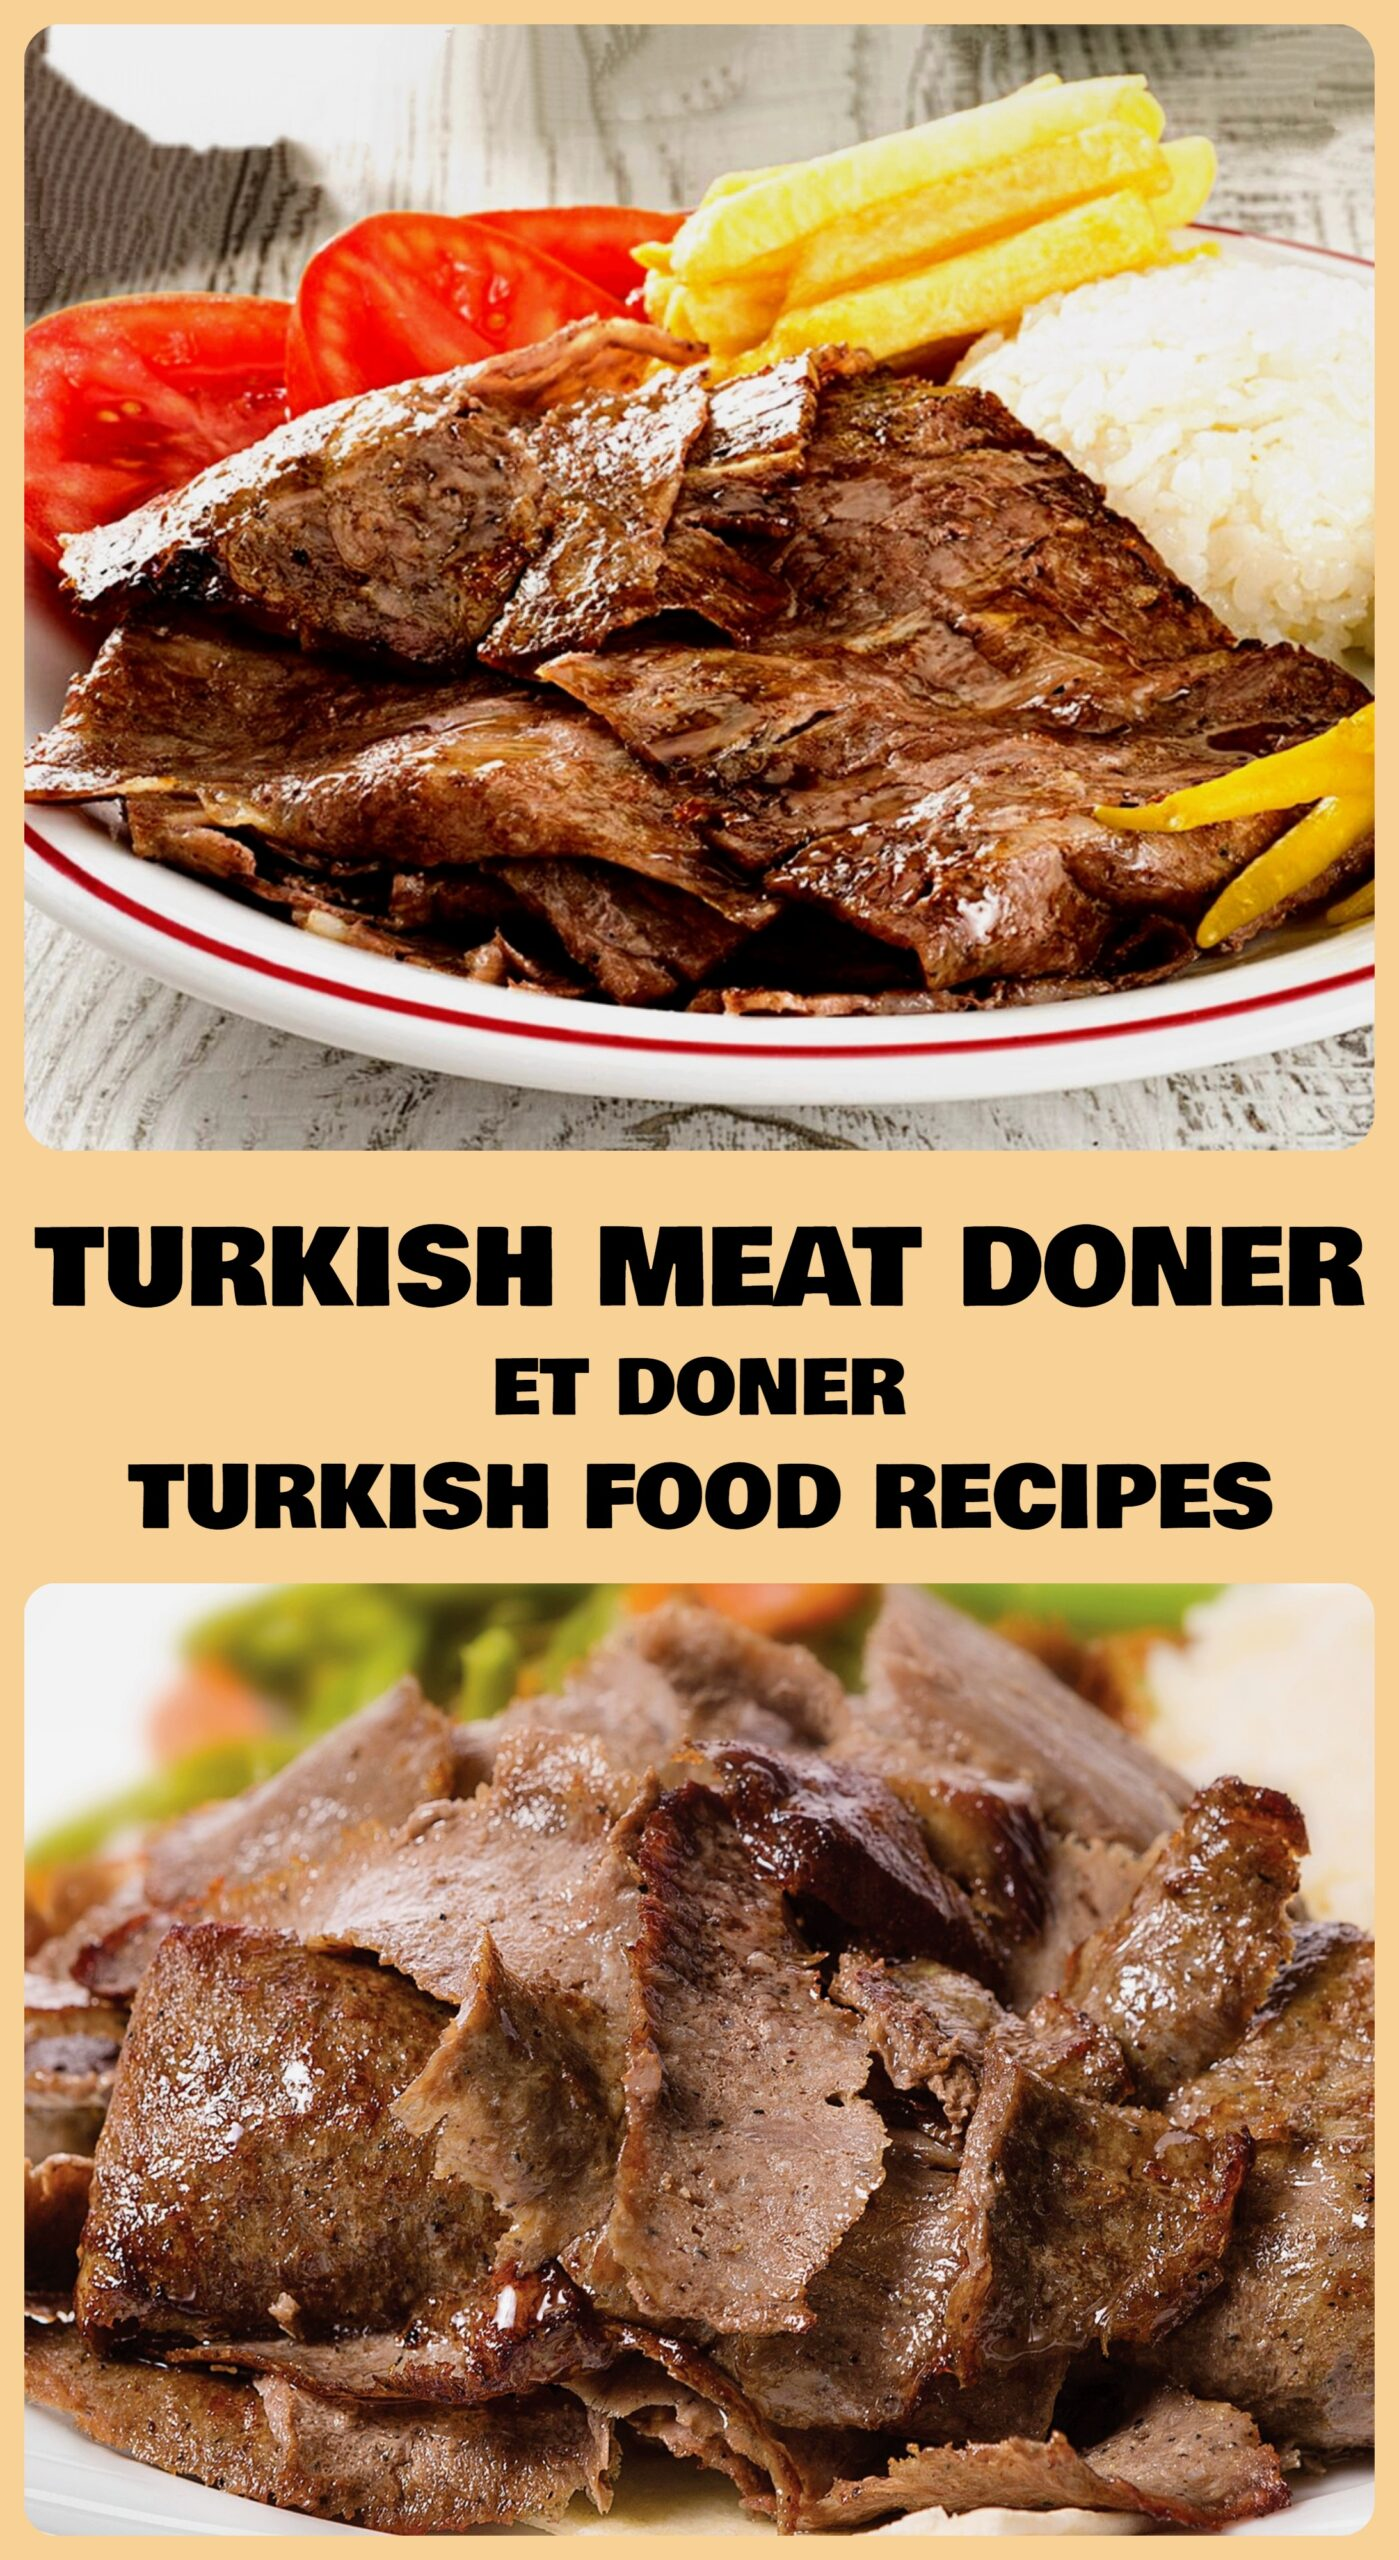 Turkish Meat Doner (Homemade) - Et Doner Recipe